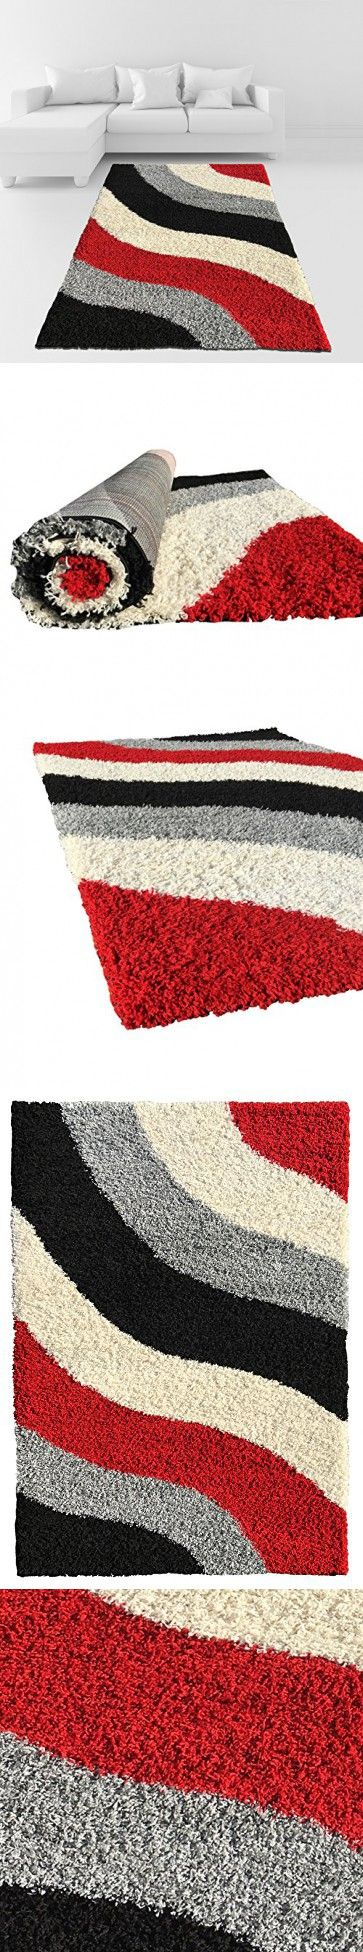 Soft Shag Area Rug 5x7 Geometric Striped Red Grey Black Shaggy Rug - Contemporary Area Rugs for Living Room Bedroom Kitchen Decorative Modern Shaggy Rugs